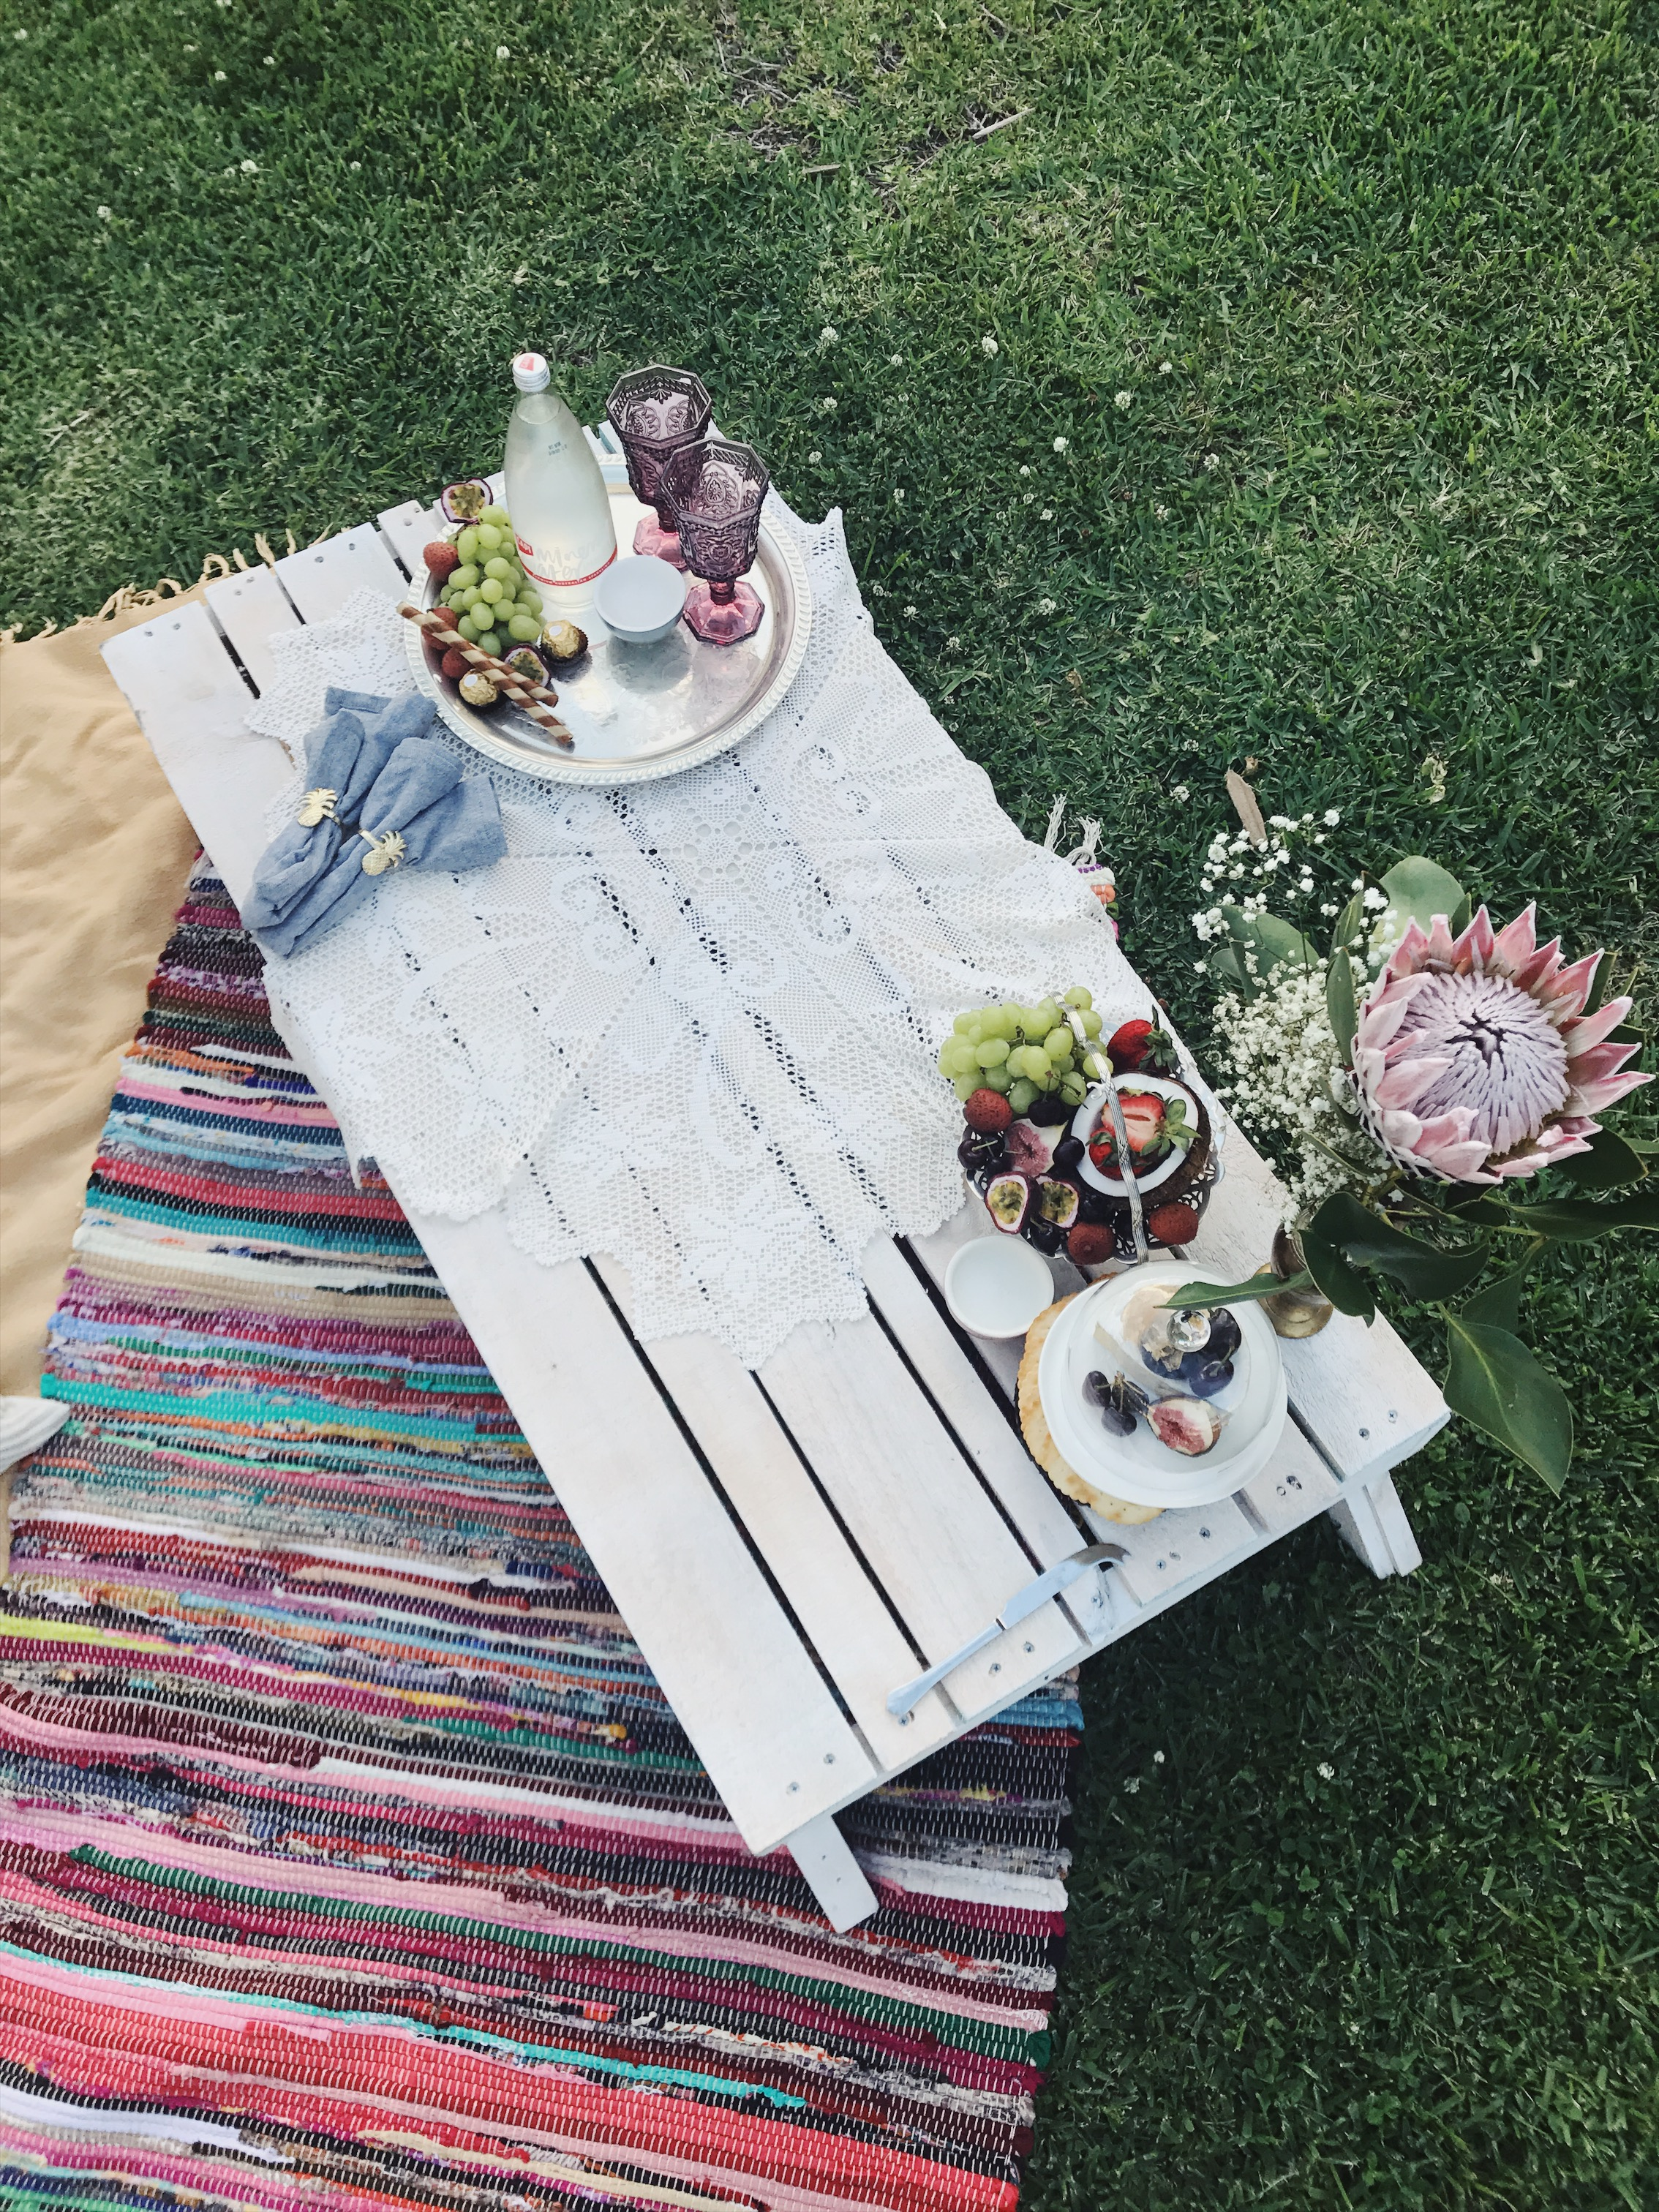 Bestfriend Picnic  - Want an afternoon just you and your bestfriend? We will deliver, set up and create something special.Prices are $220 for 2 pax, and $280 for 4 pax.Includes one of our cheese boards full of delights,pallet table, rugs, throws, cushions, flowers, cutlery, chilled sparking water and a delicious platter to share.*vegan/vegetarian/gluten free options available*delivery fee may incur outside zone.